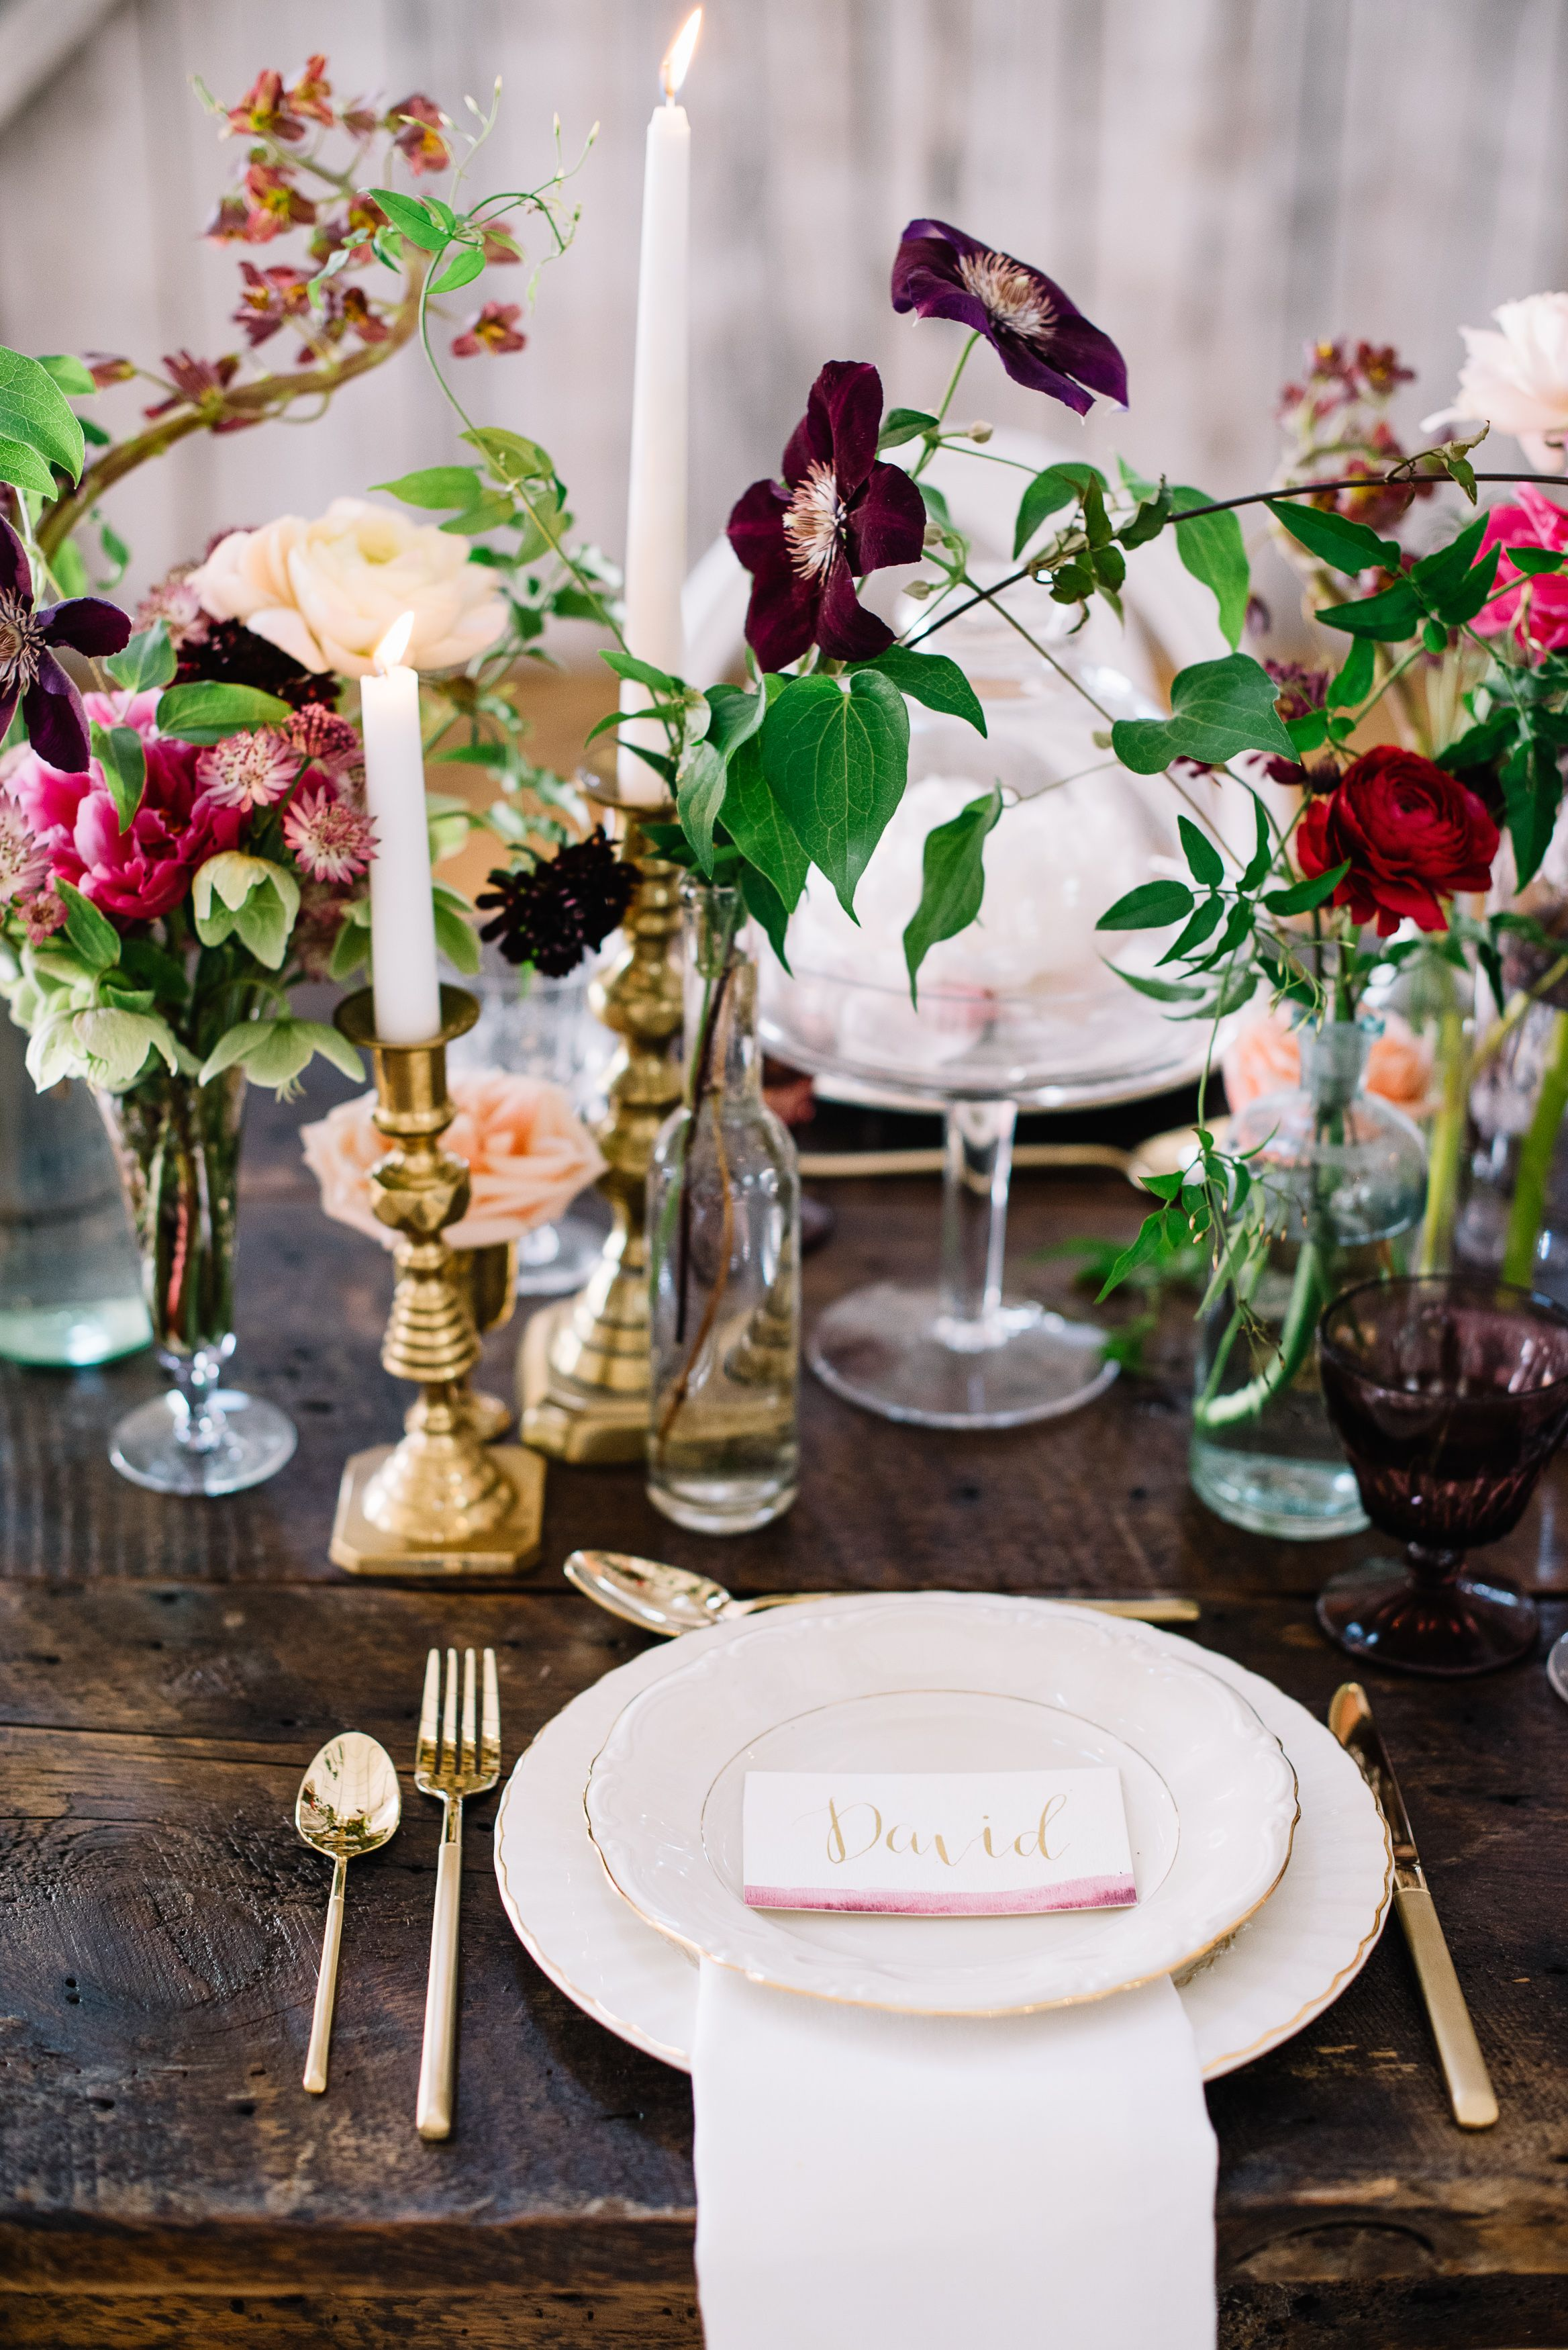 Clusters Of Miniature Wedding Centerpieces Come Together To Create A Beautiful Floral Display S Simple Wedding Centerpieces Round Wedding Tables Wedding Table